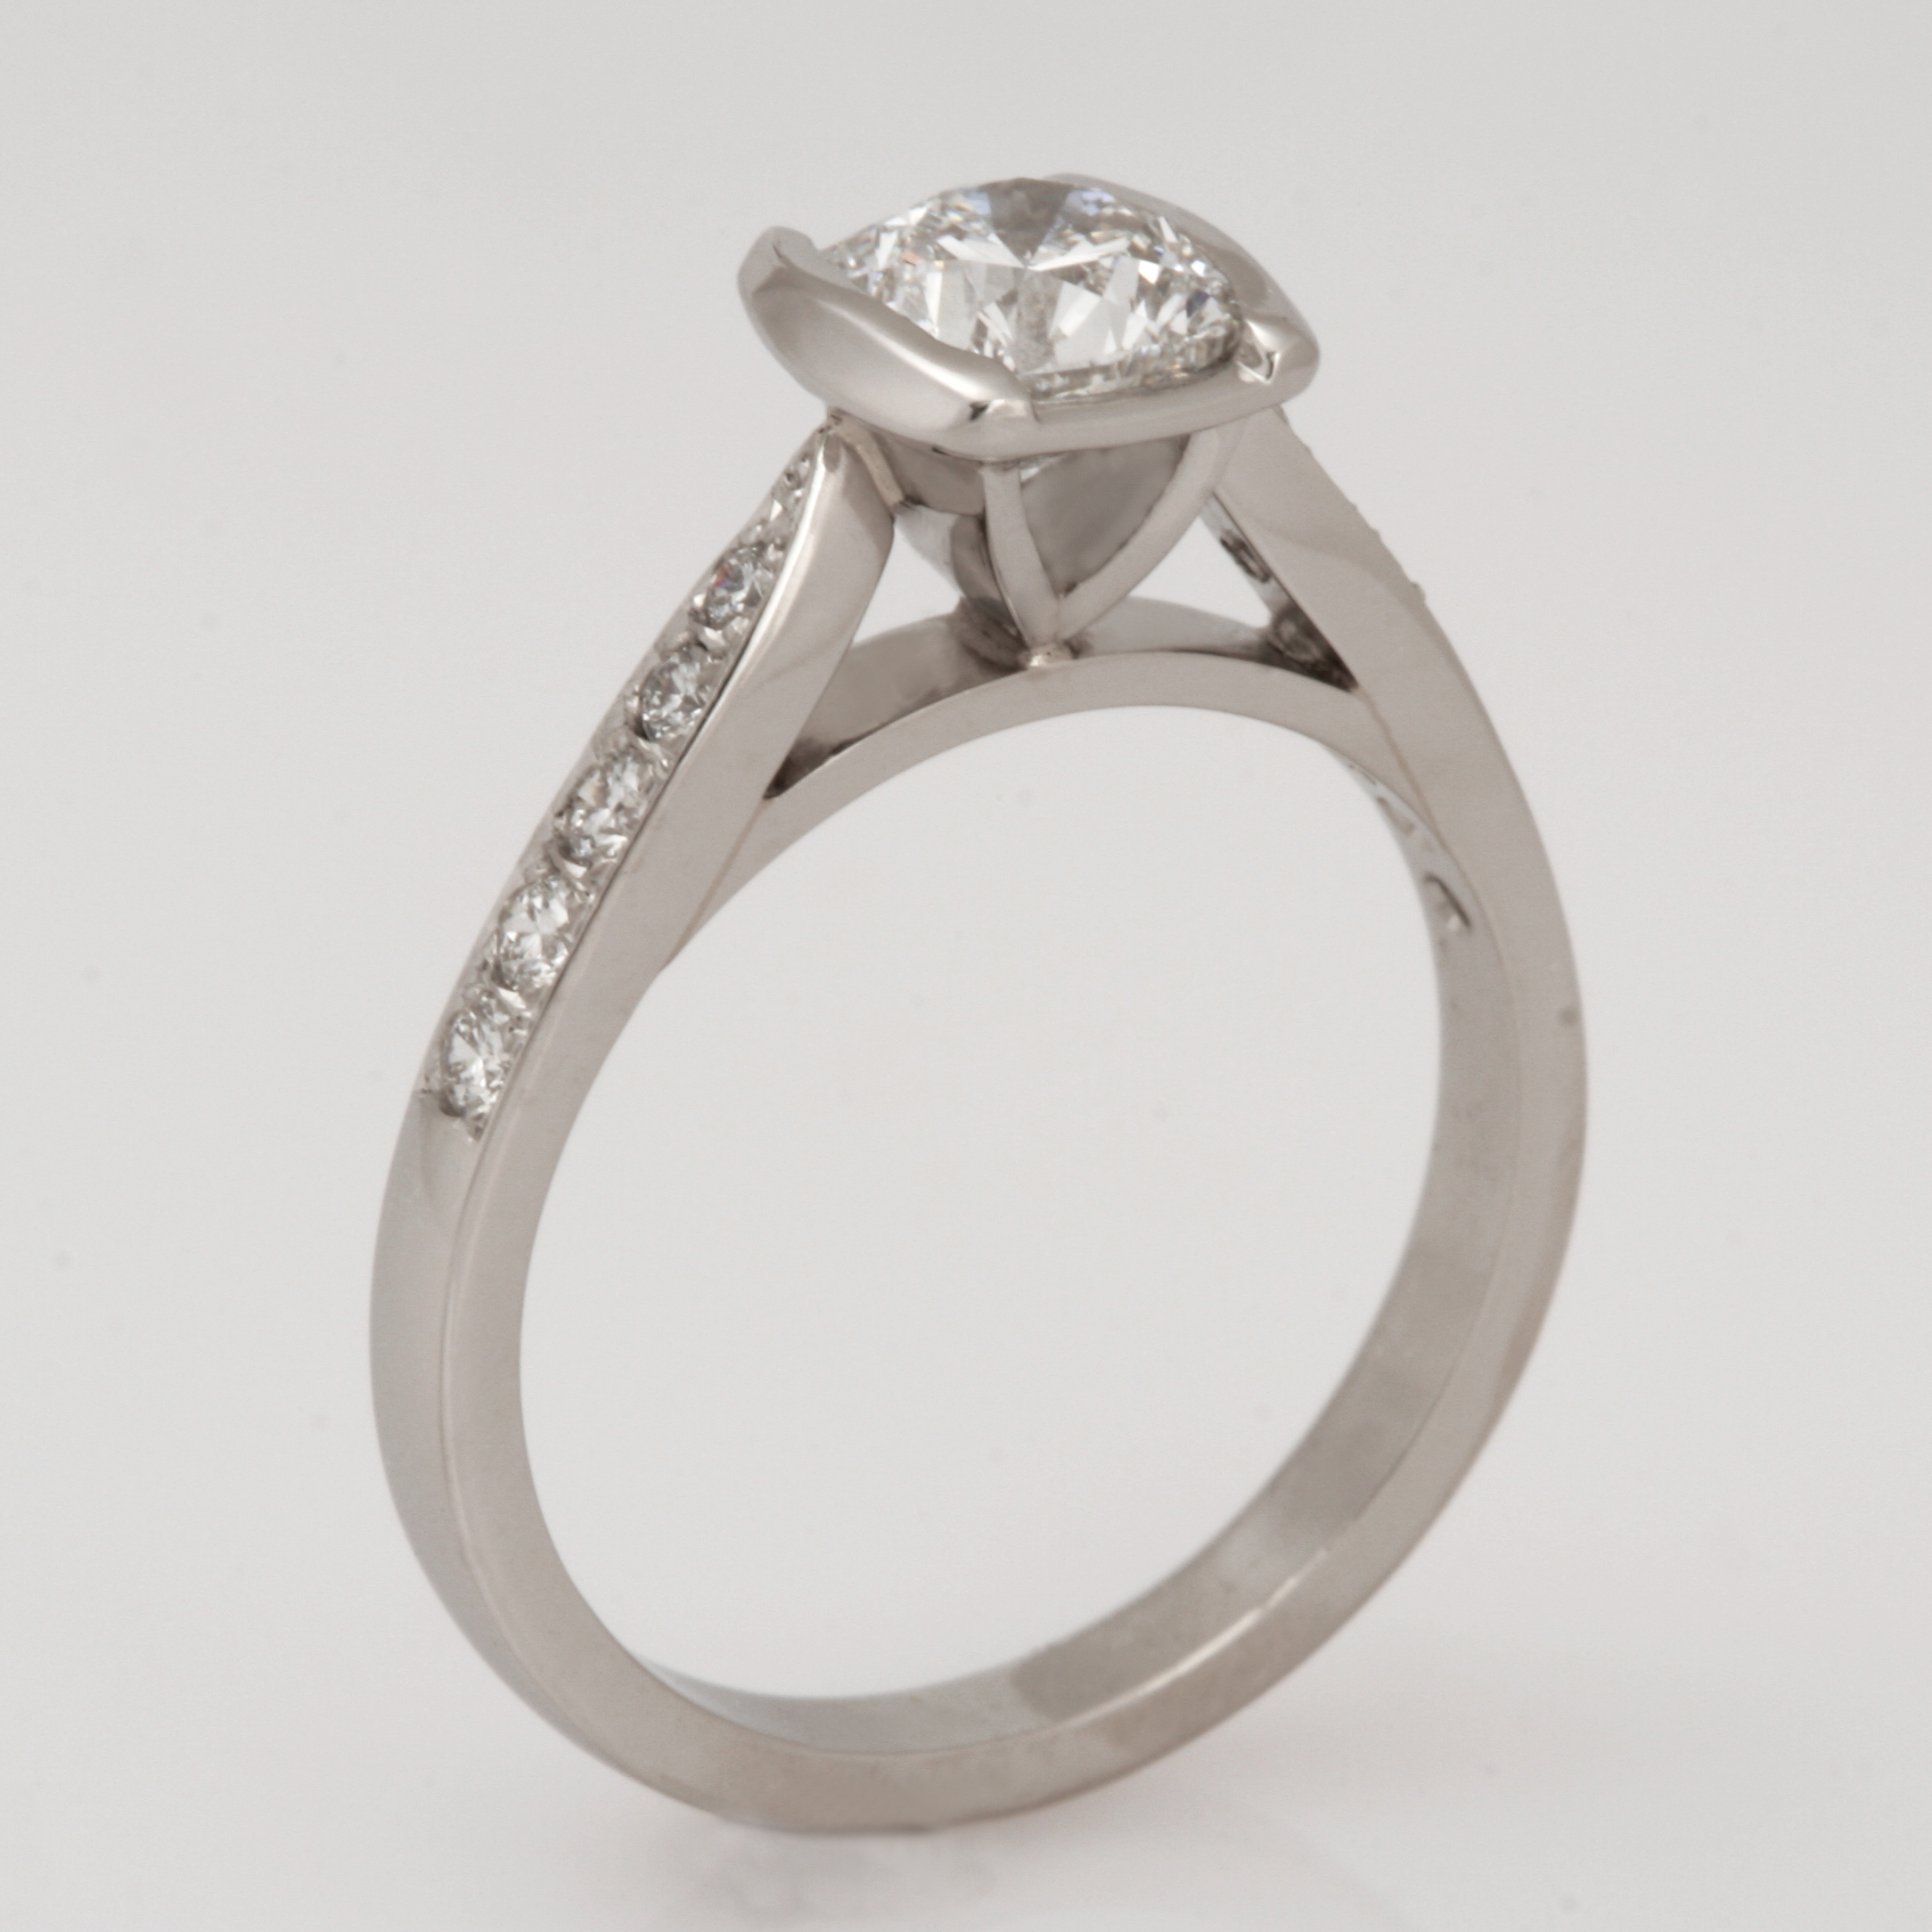 Handmade ladies platinum square cushion cut diamond engagement ring.